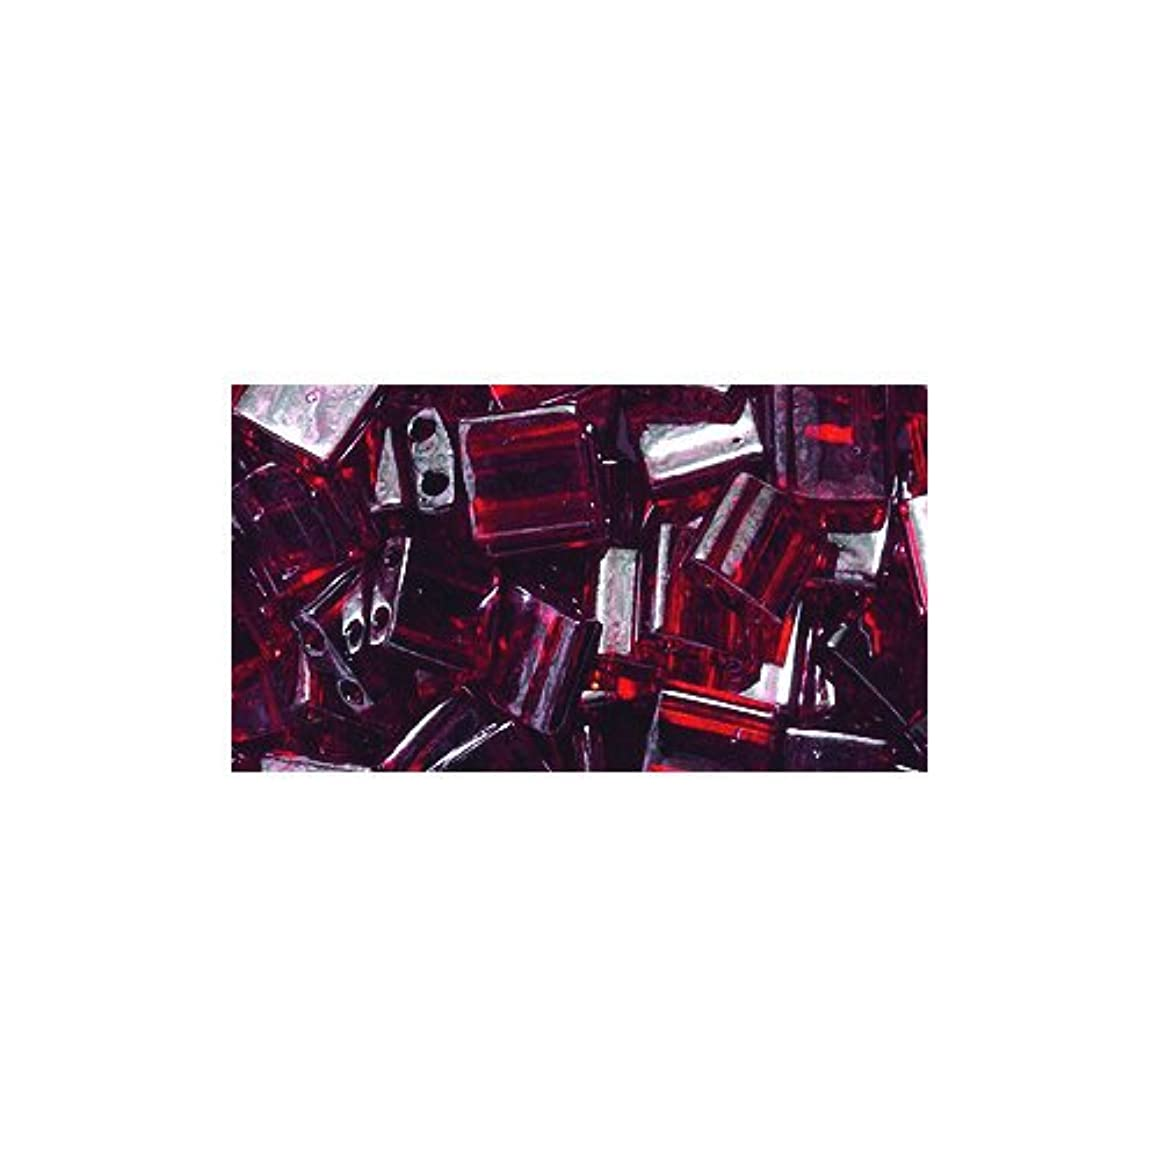 Miyuki Tila Square Two Hole Bead TL304, 5mm, Transparent Garnet Gold Luster, 10-Gram/Pack e35666512856